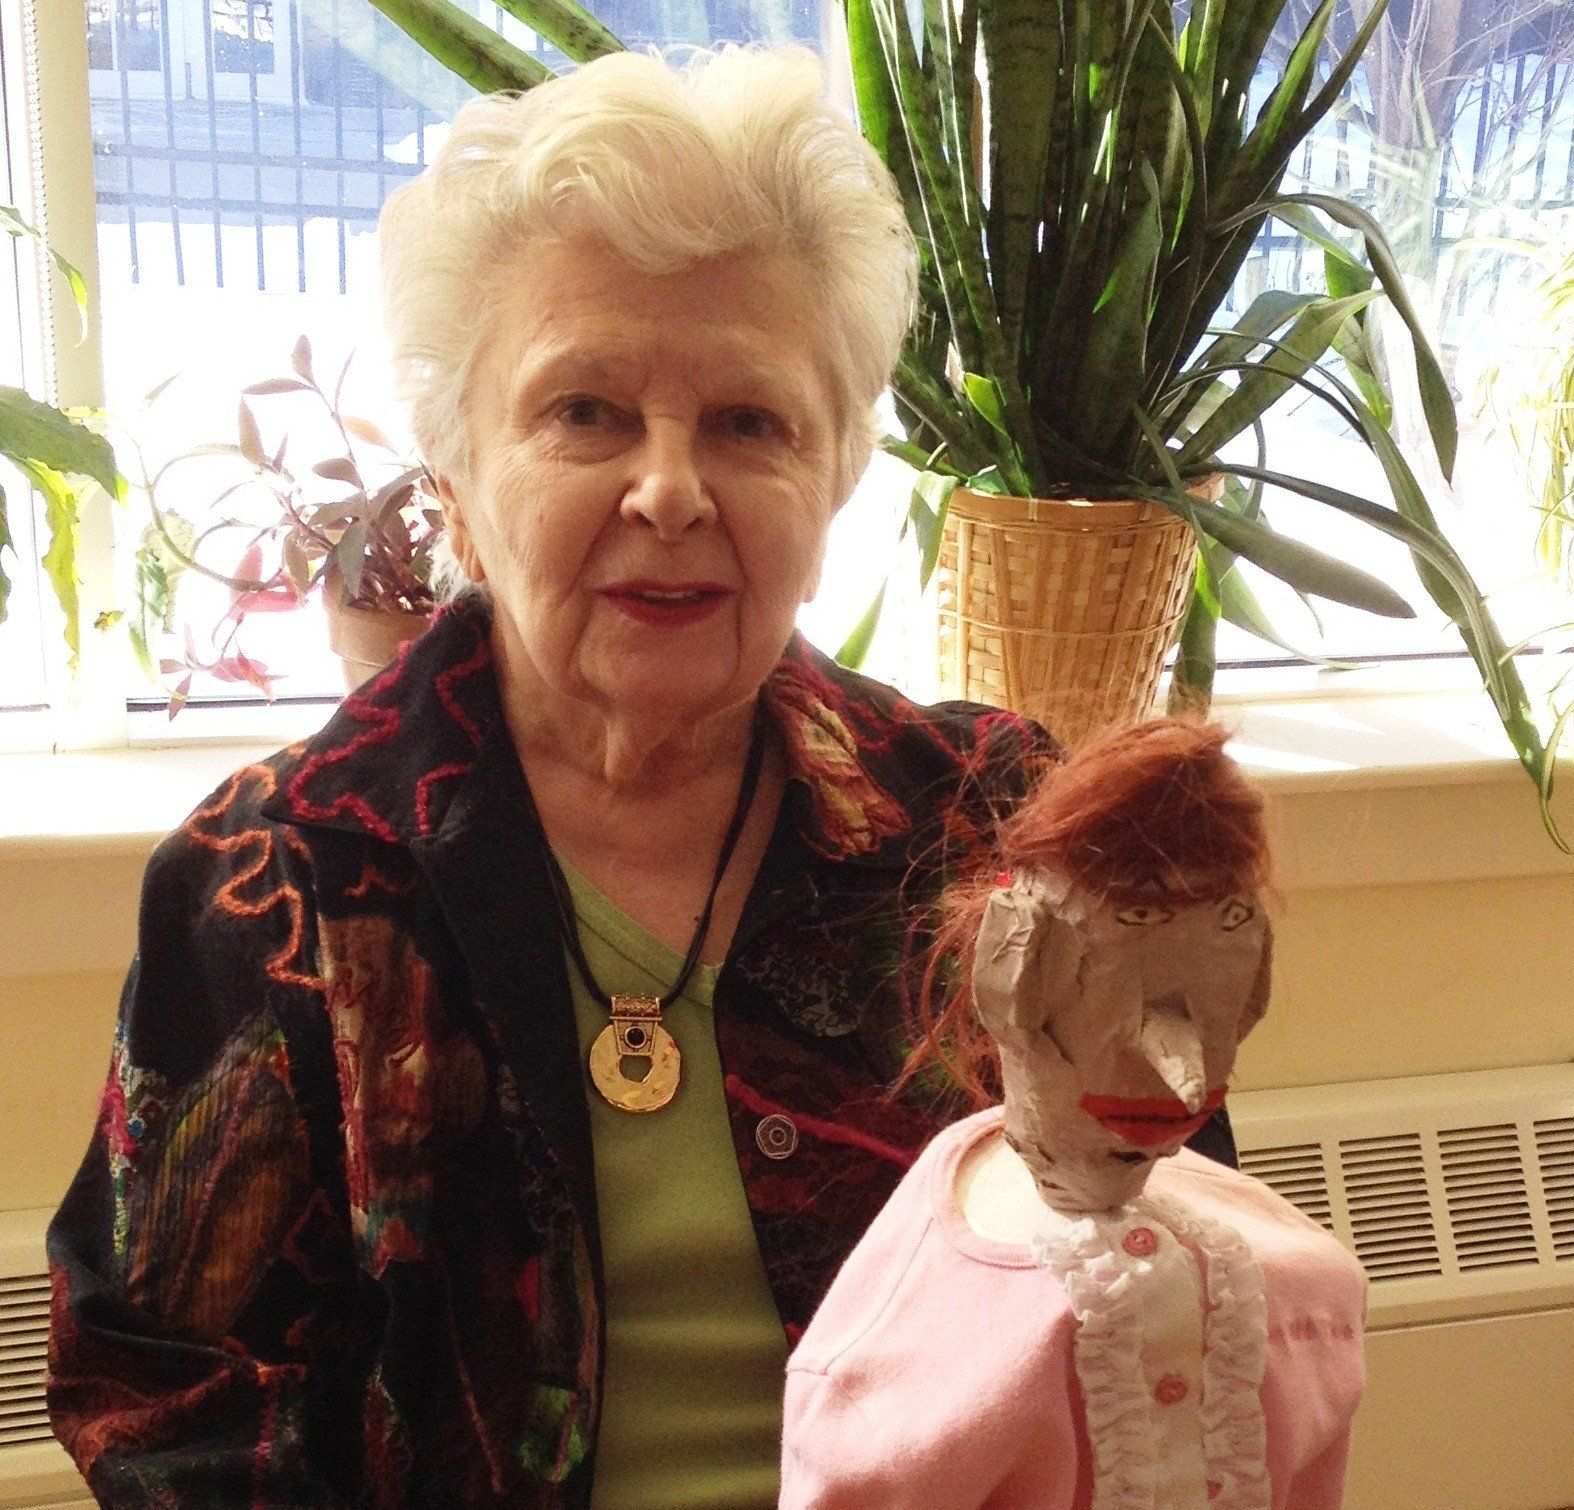 senior woman with puppet